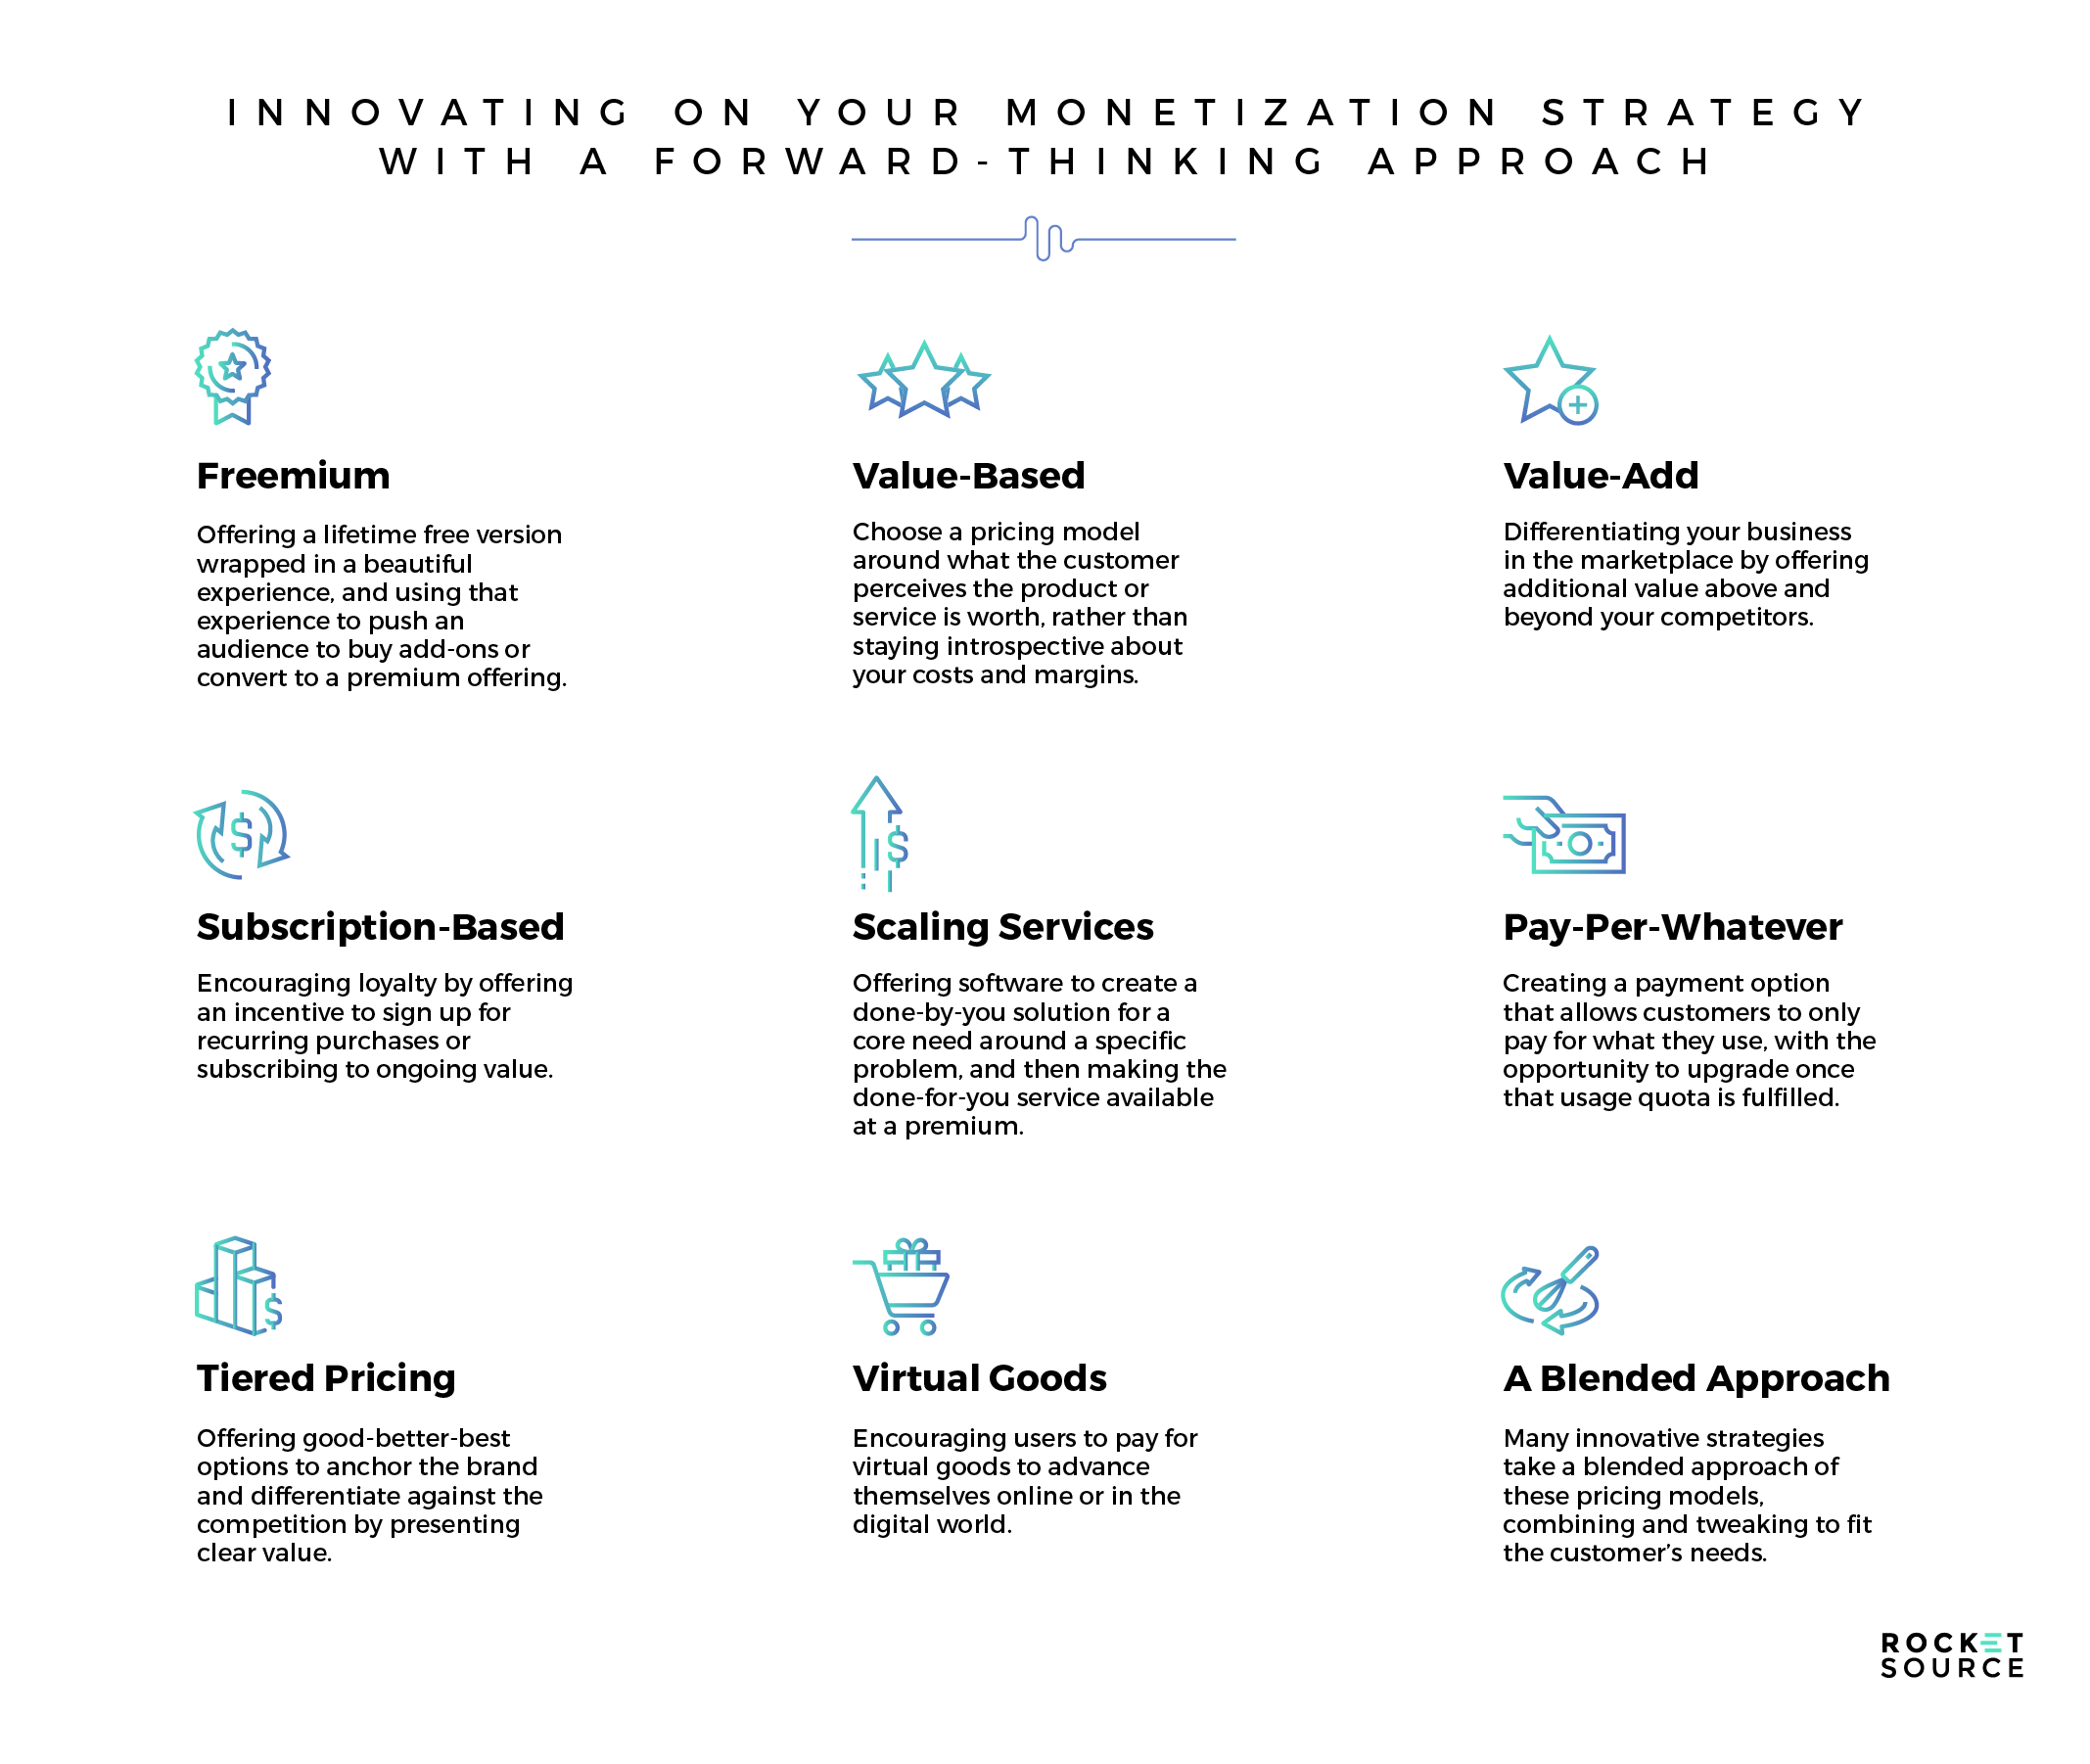 monetization strategy innovative models